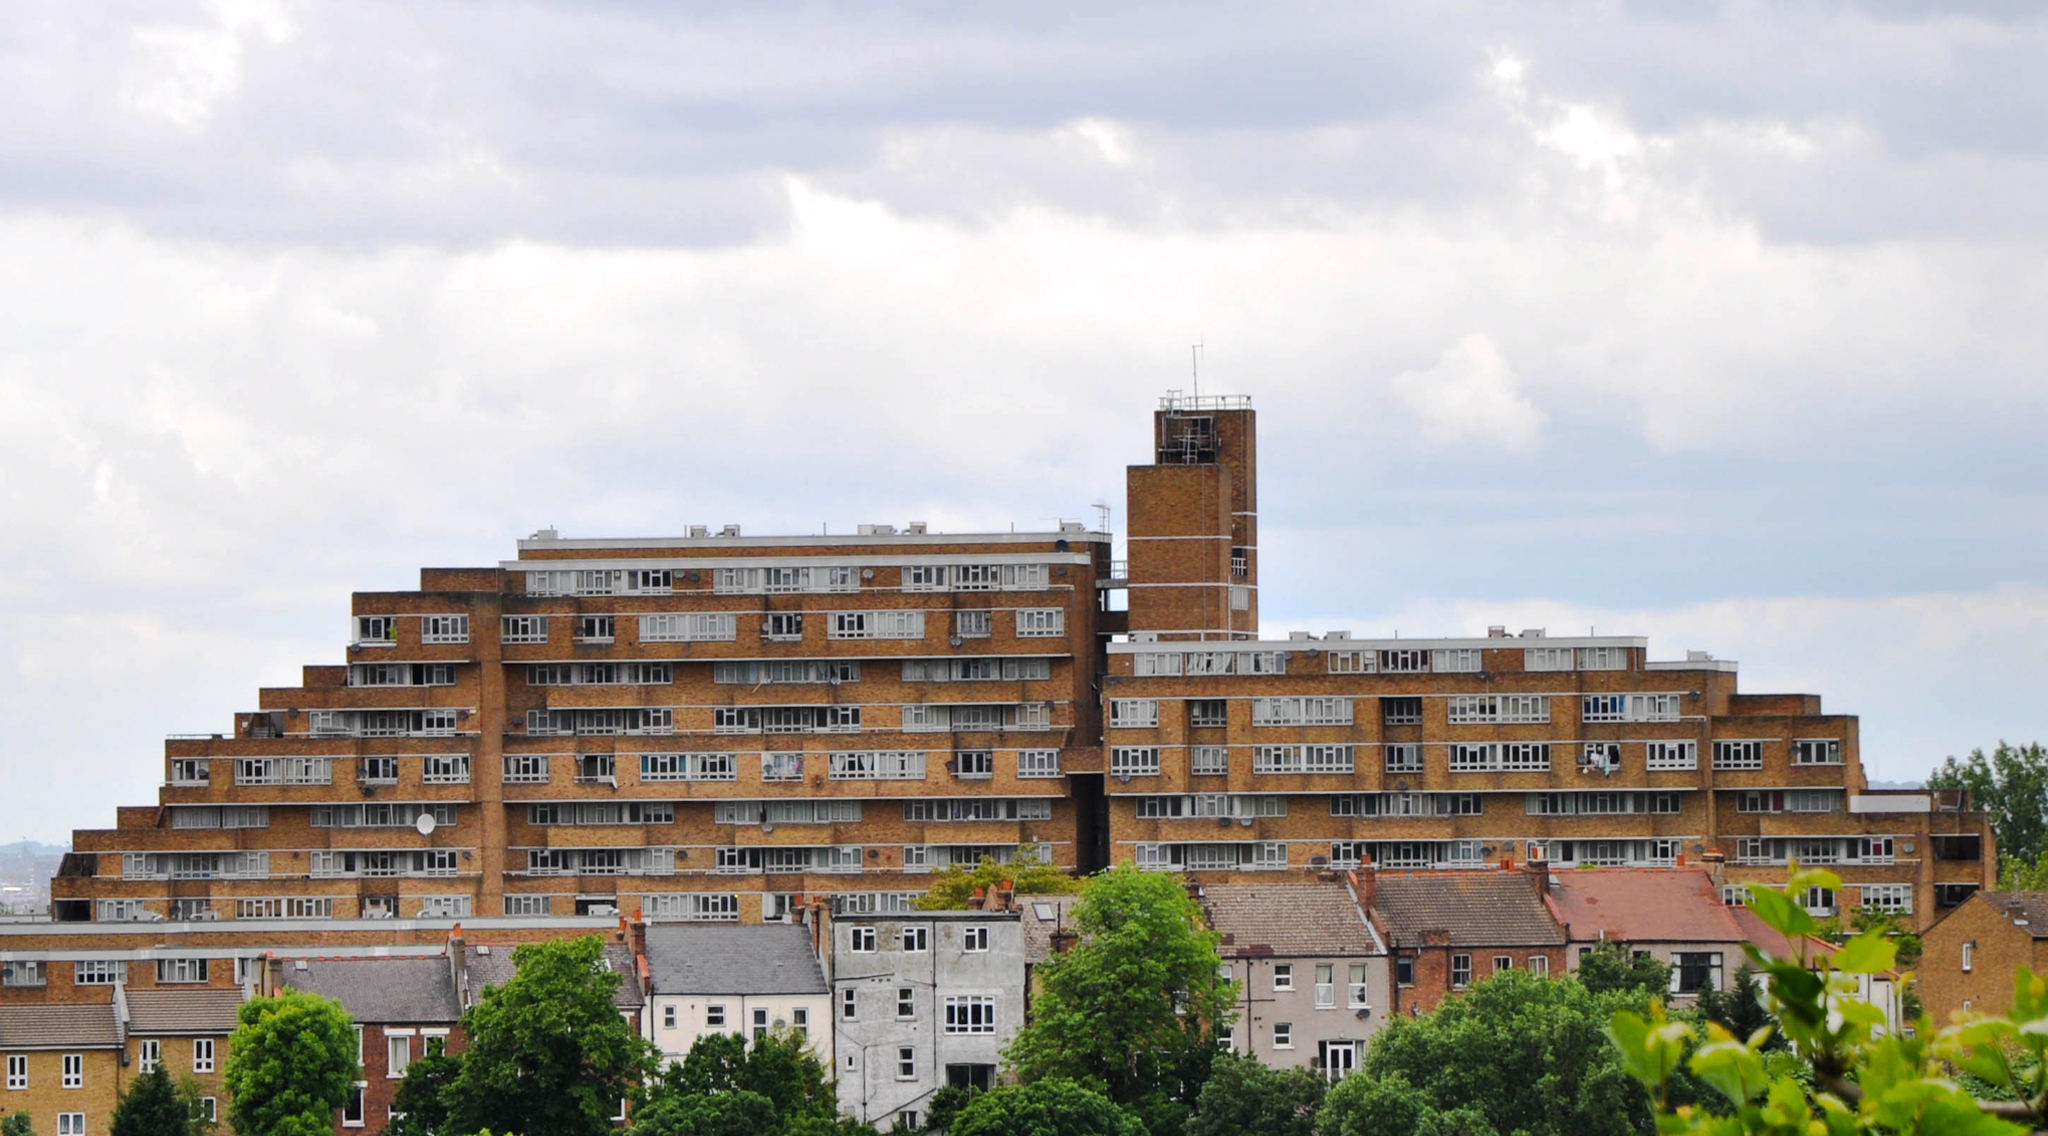 Best buildings in London: Dawson's Heights